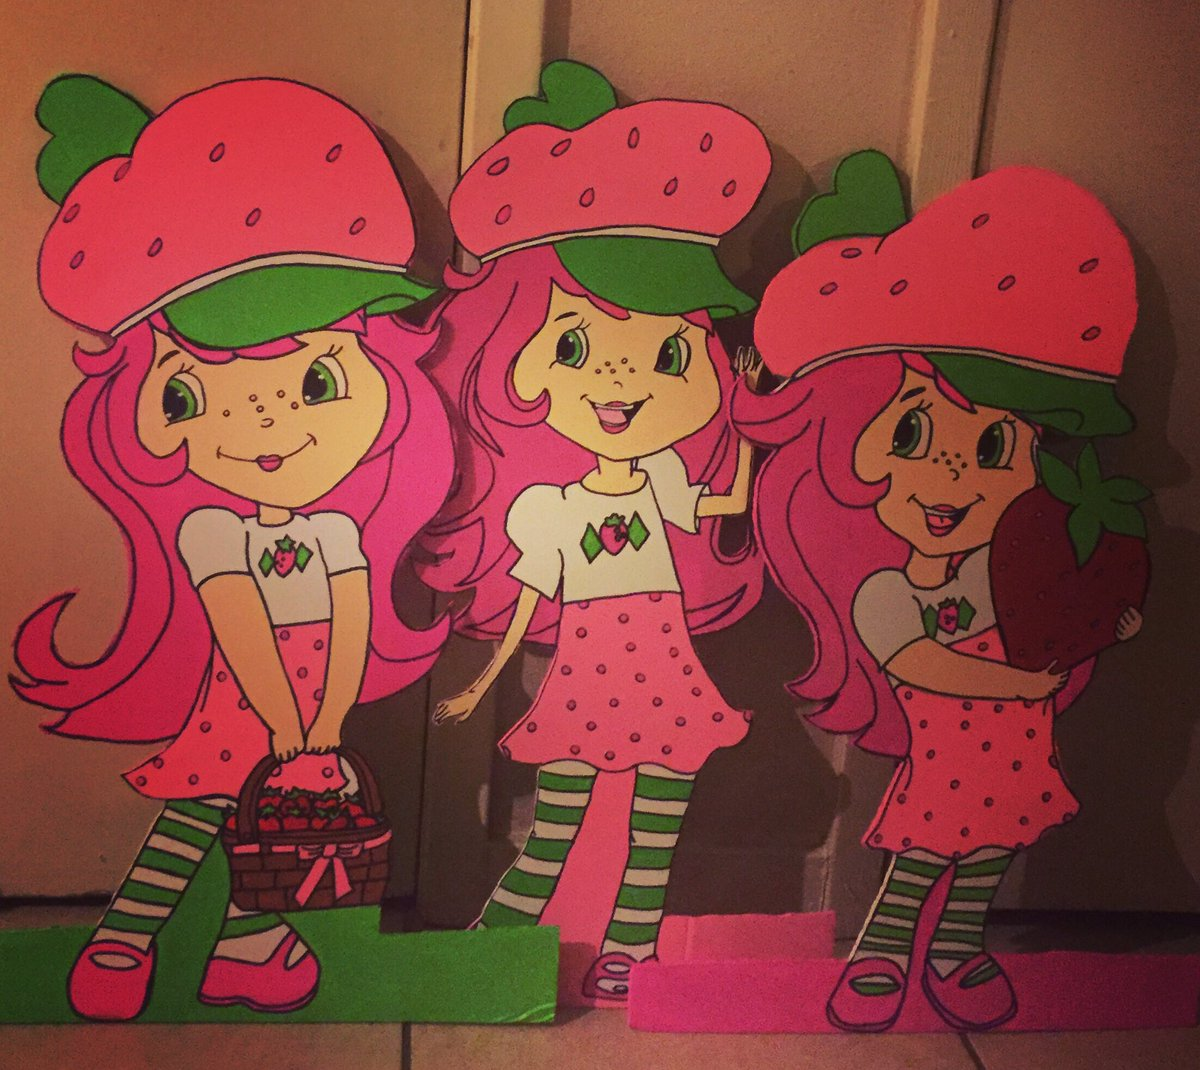 STRAWBERRY SHORTCAKE GIRLS I DID FOR A B-DAY PARTY #partyprops #strawberryshortcakegirl #partycenterpieces #SupportBlackBusiness #Supportblackartists #blackart #kidsroomdecorpic.twitter.com/vS1p14Y9Gm